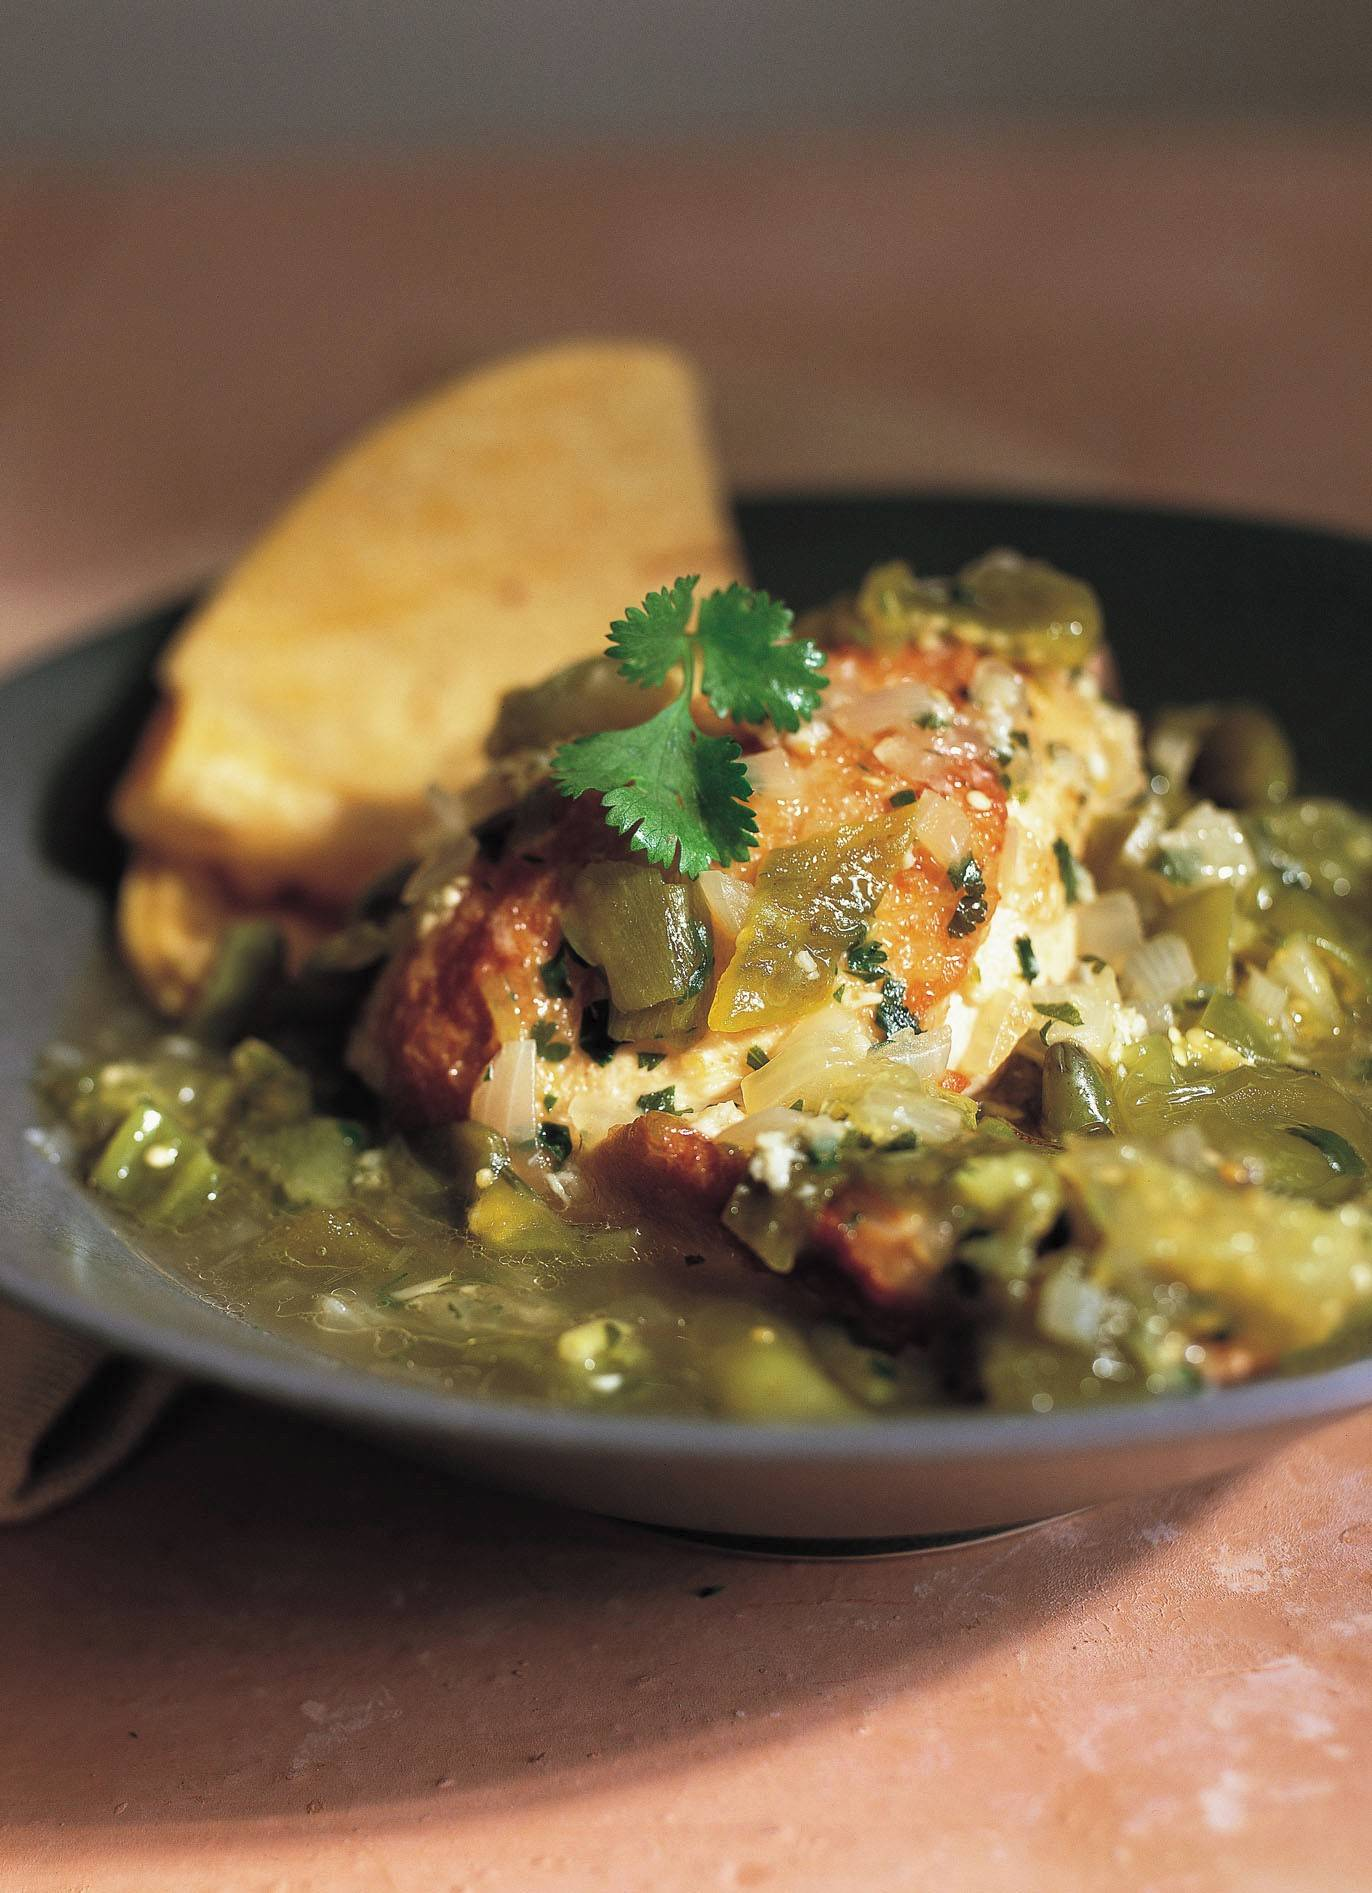 Chicken with roasted tomatillo sauce a great dish for small gathering